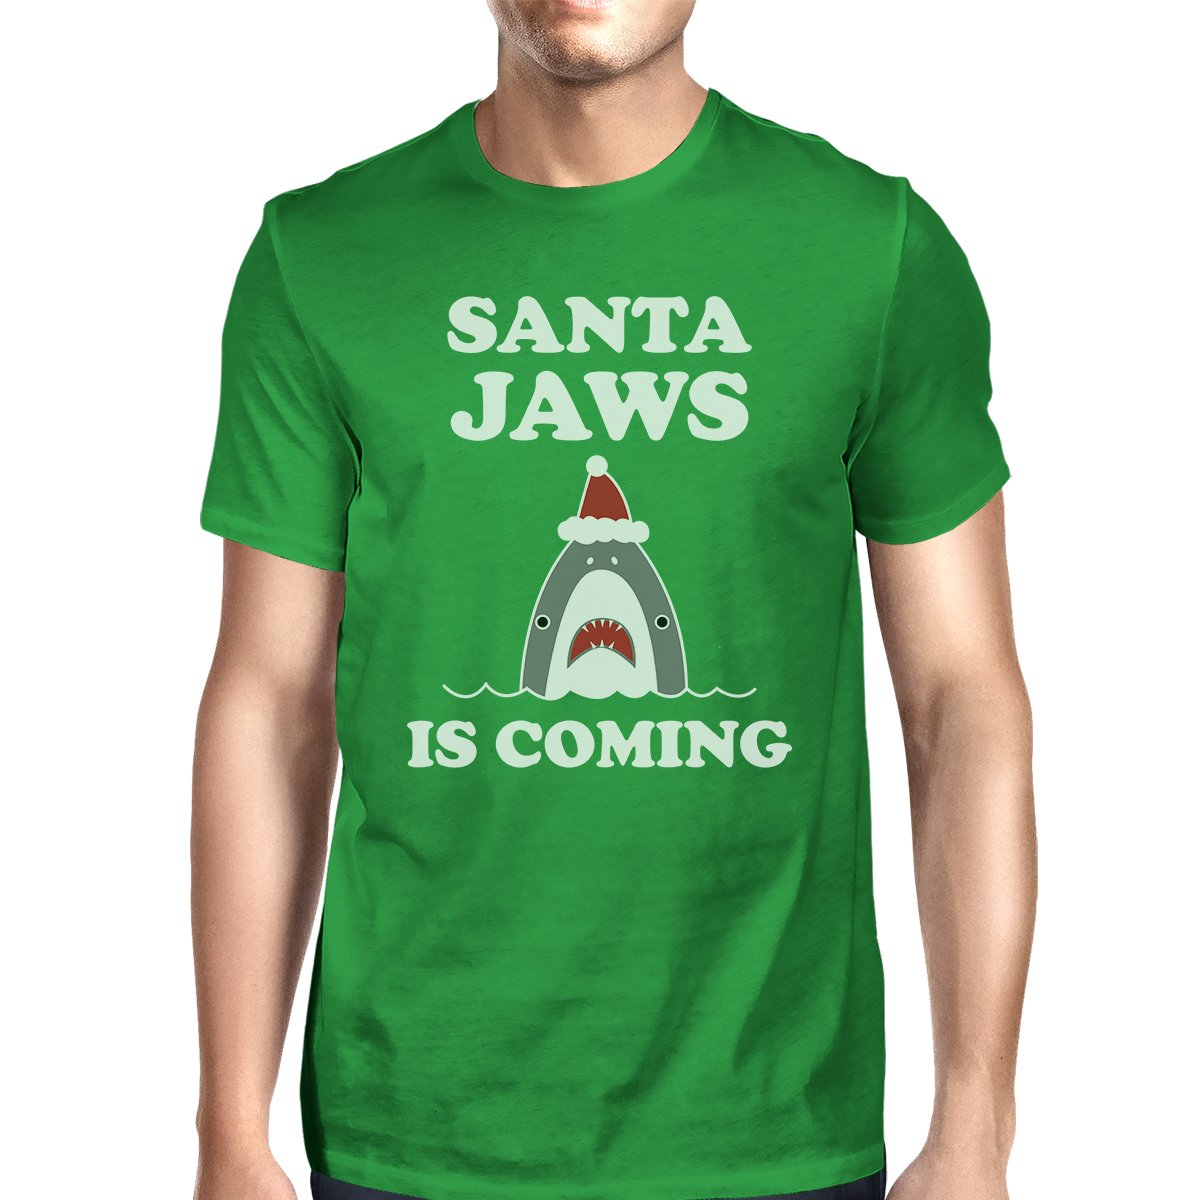 Santa Jaws Is Coming Mens Green Shirt